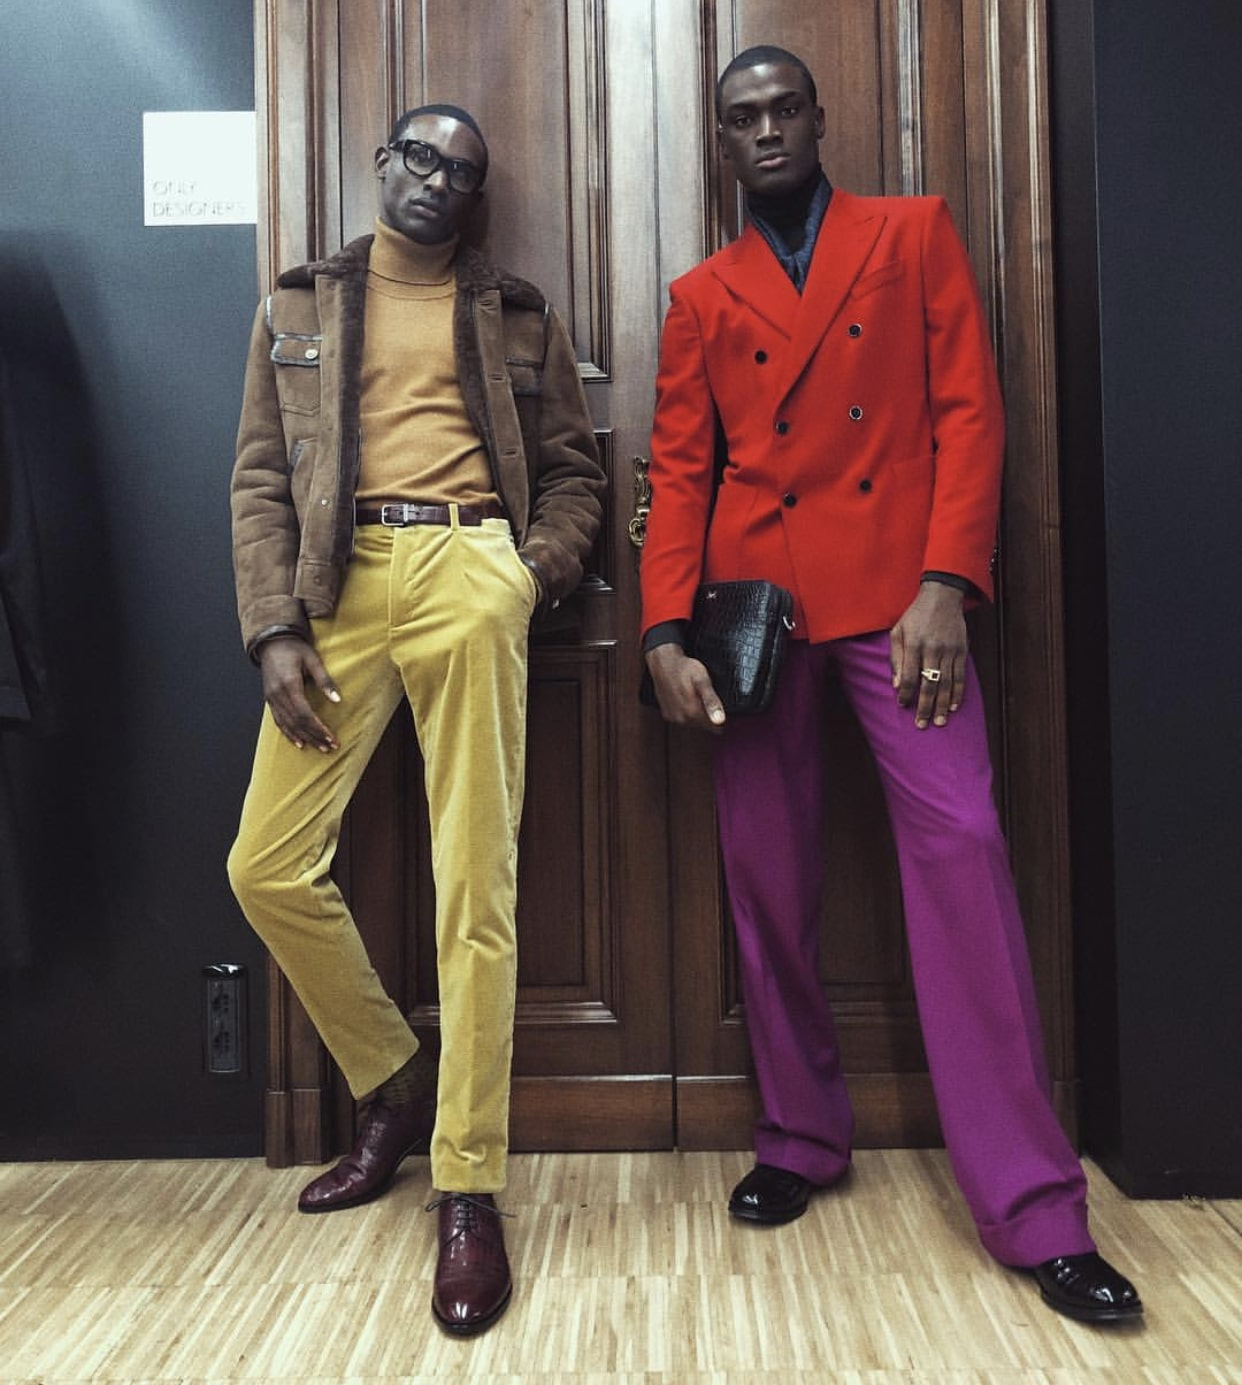 victor-ndigwe-davidson-obennebo-most-defining-nigerian-fashion-moments-of-the-2010s